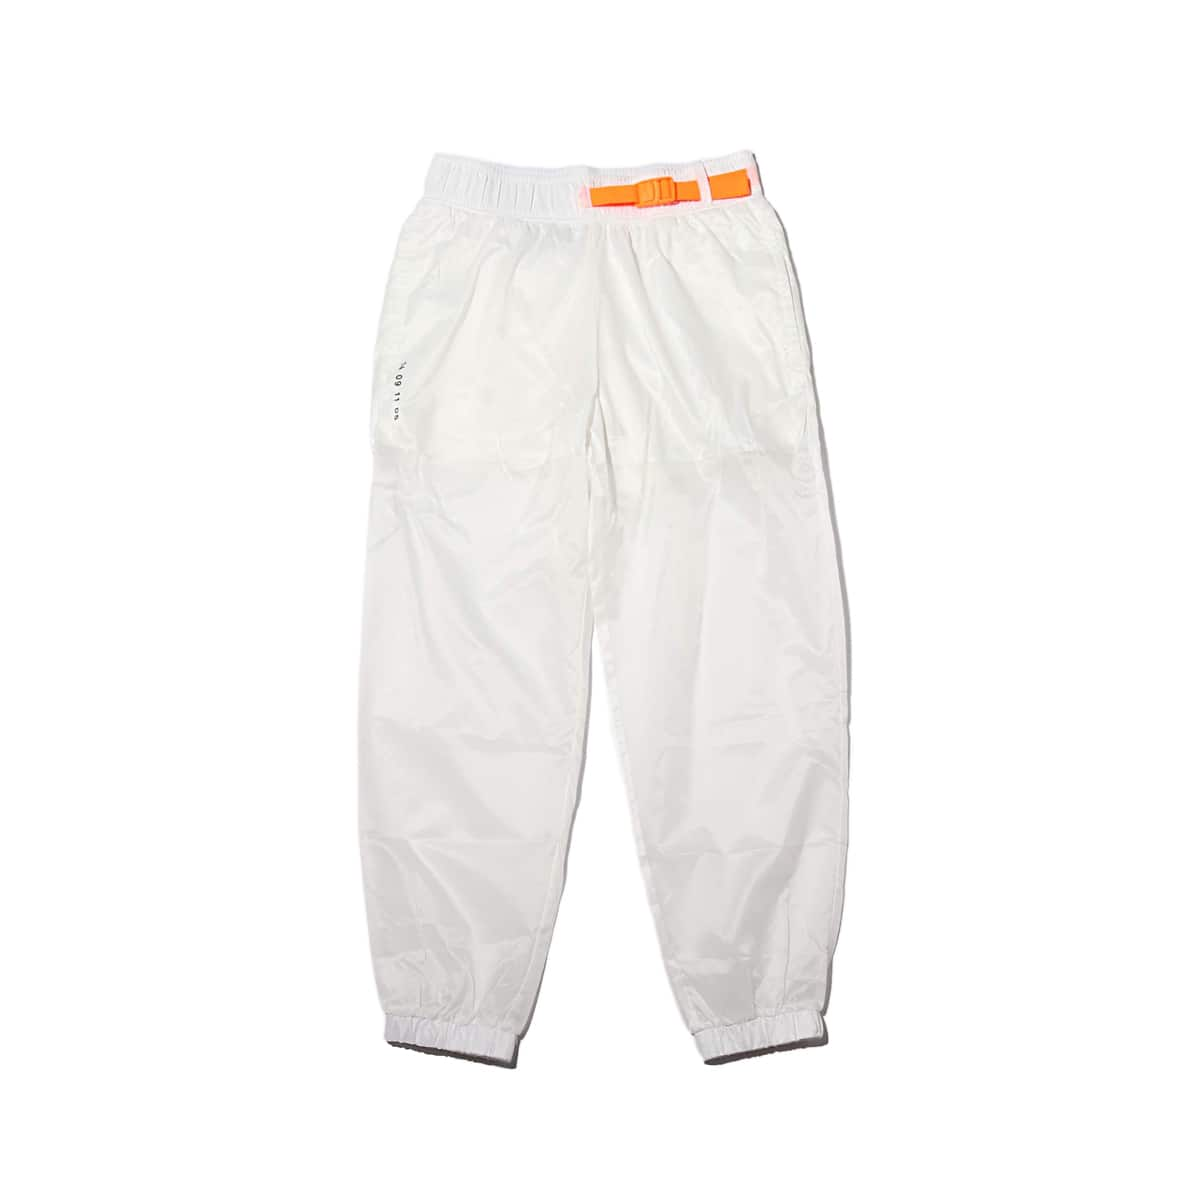 NIKE AS W NSW TCH PCK PANT ENG WVN SUMMIT WHITE/BLACK 19SU-S_photo_large